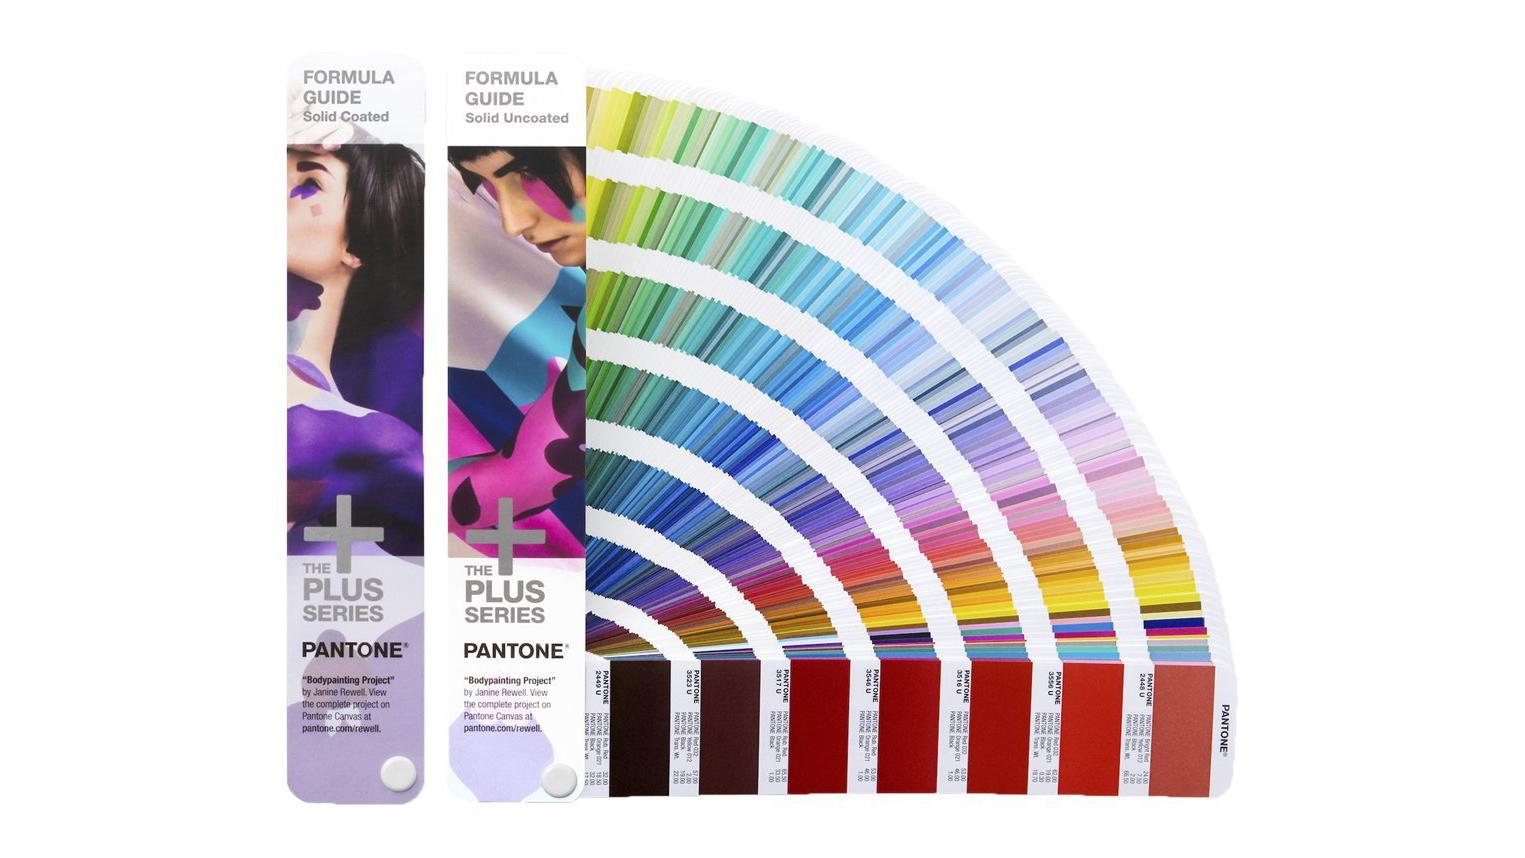 Pantone Plus ColorBridge: Coated and Uncoated